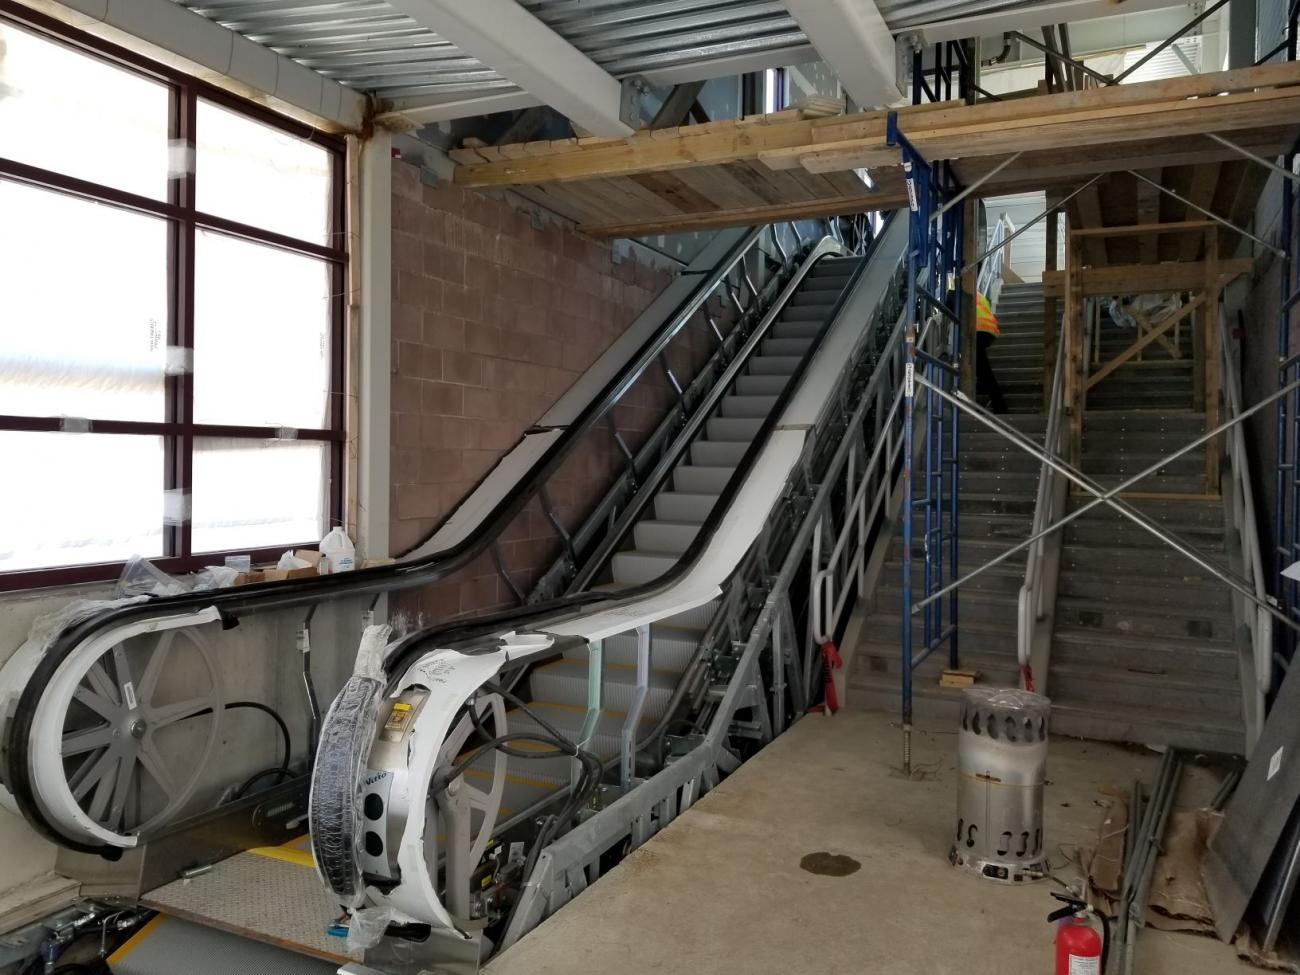 Interior escalator and staircase (April 25, 2019)